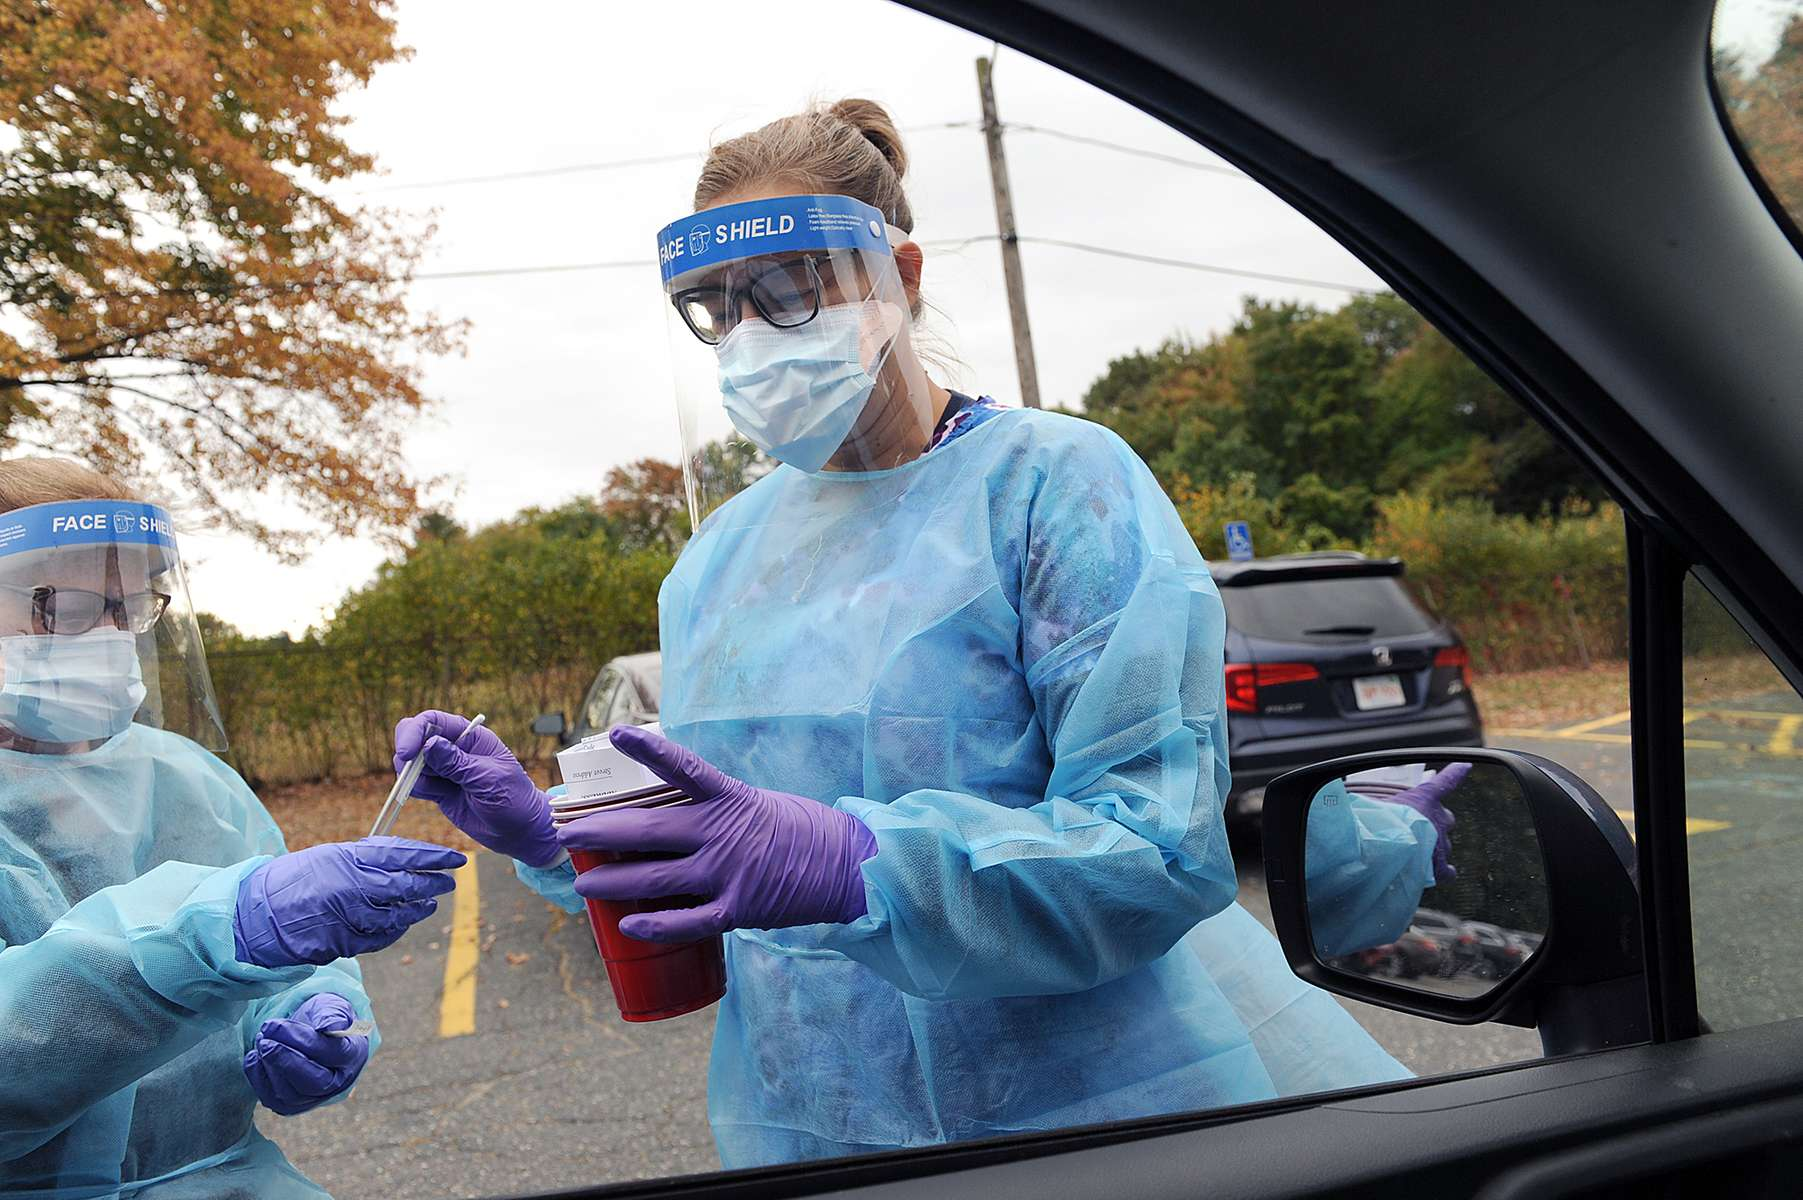 10/2/20— FRAMINGHAM— Registered Nurse Loren Prather prepares to give a COVID-19 test at the Walsh Middle School, the newest  location for drive-through free COVID testing administered by Fallon Ambulance.  The drive through at 301 Brook St. is open Monday-Saturday, 9 a.m. to 1 p.m.  Free walk-up tests are available at South Middlesex Opportunity Council (SMOC) 7 Bishop St. Monday, Wednesday and Friday, 3-6 p.m., and at the Amazing Things Art Center, 160 Hollis St., Tuesday and Thursday, 3-6 p.m.  [Daily News and Wicked Local Staff Photo/Art Illman]